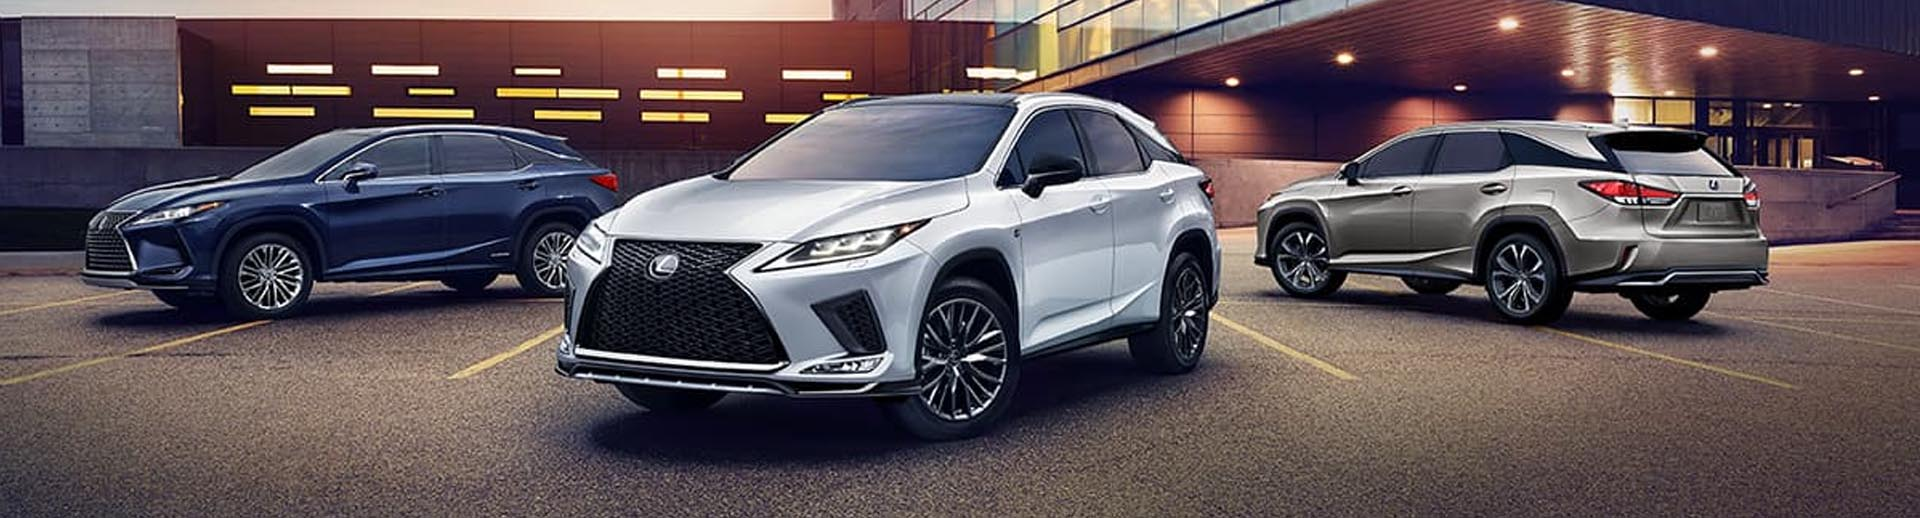 2020 Lexus RX 350 Lifestyle Photo